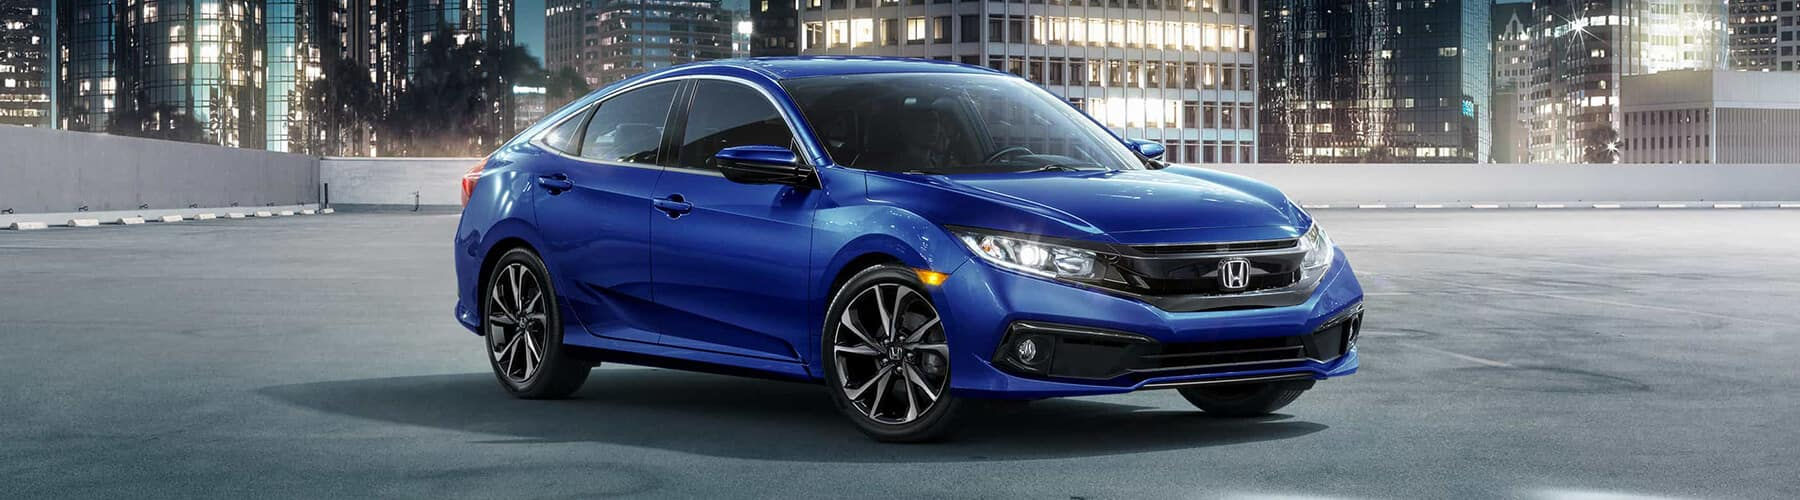 2019 Honda Civic Sedan Slider